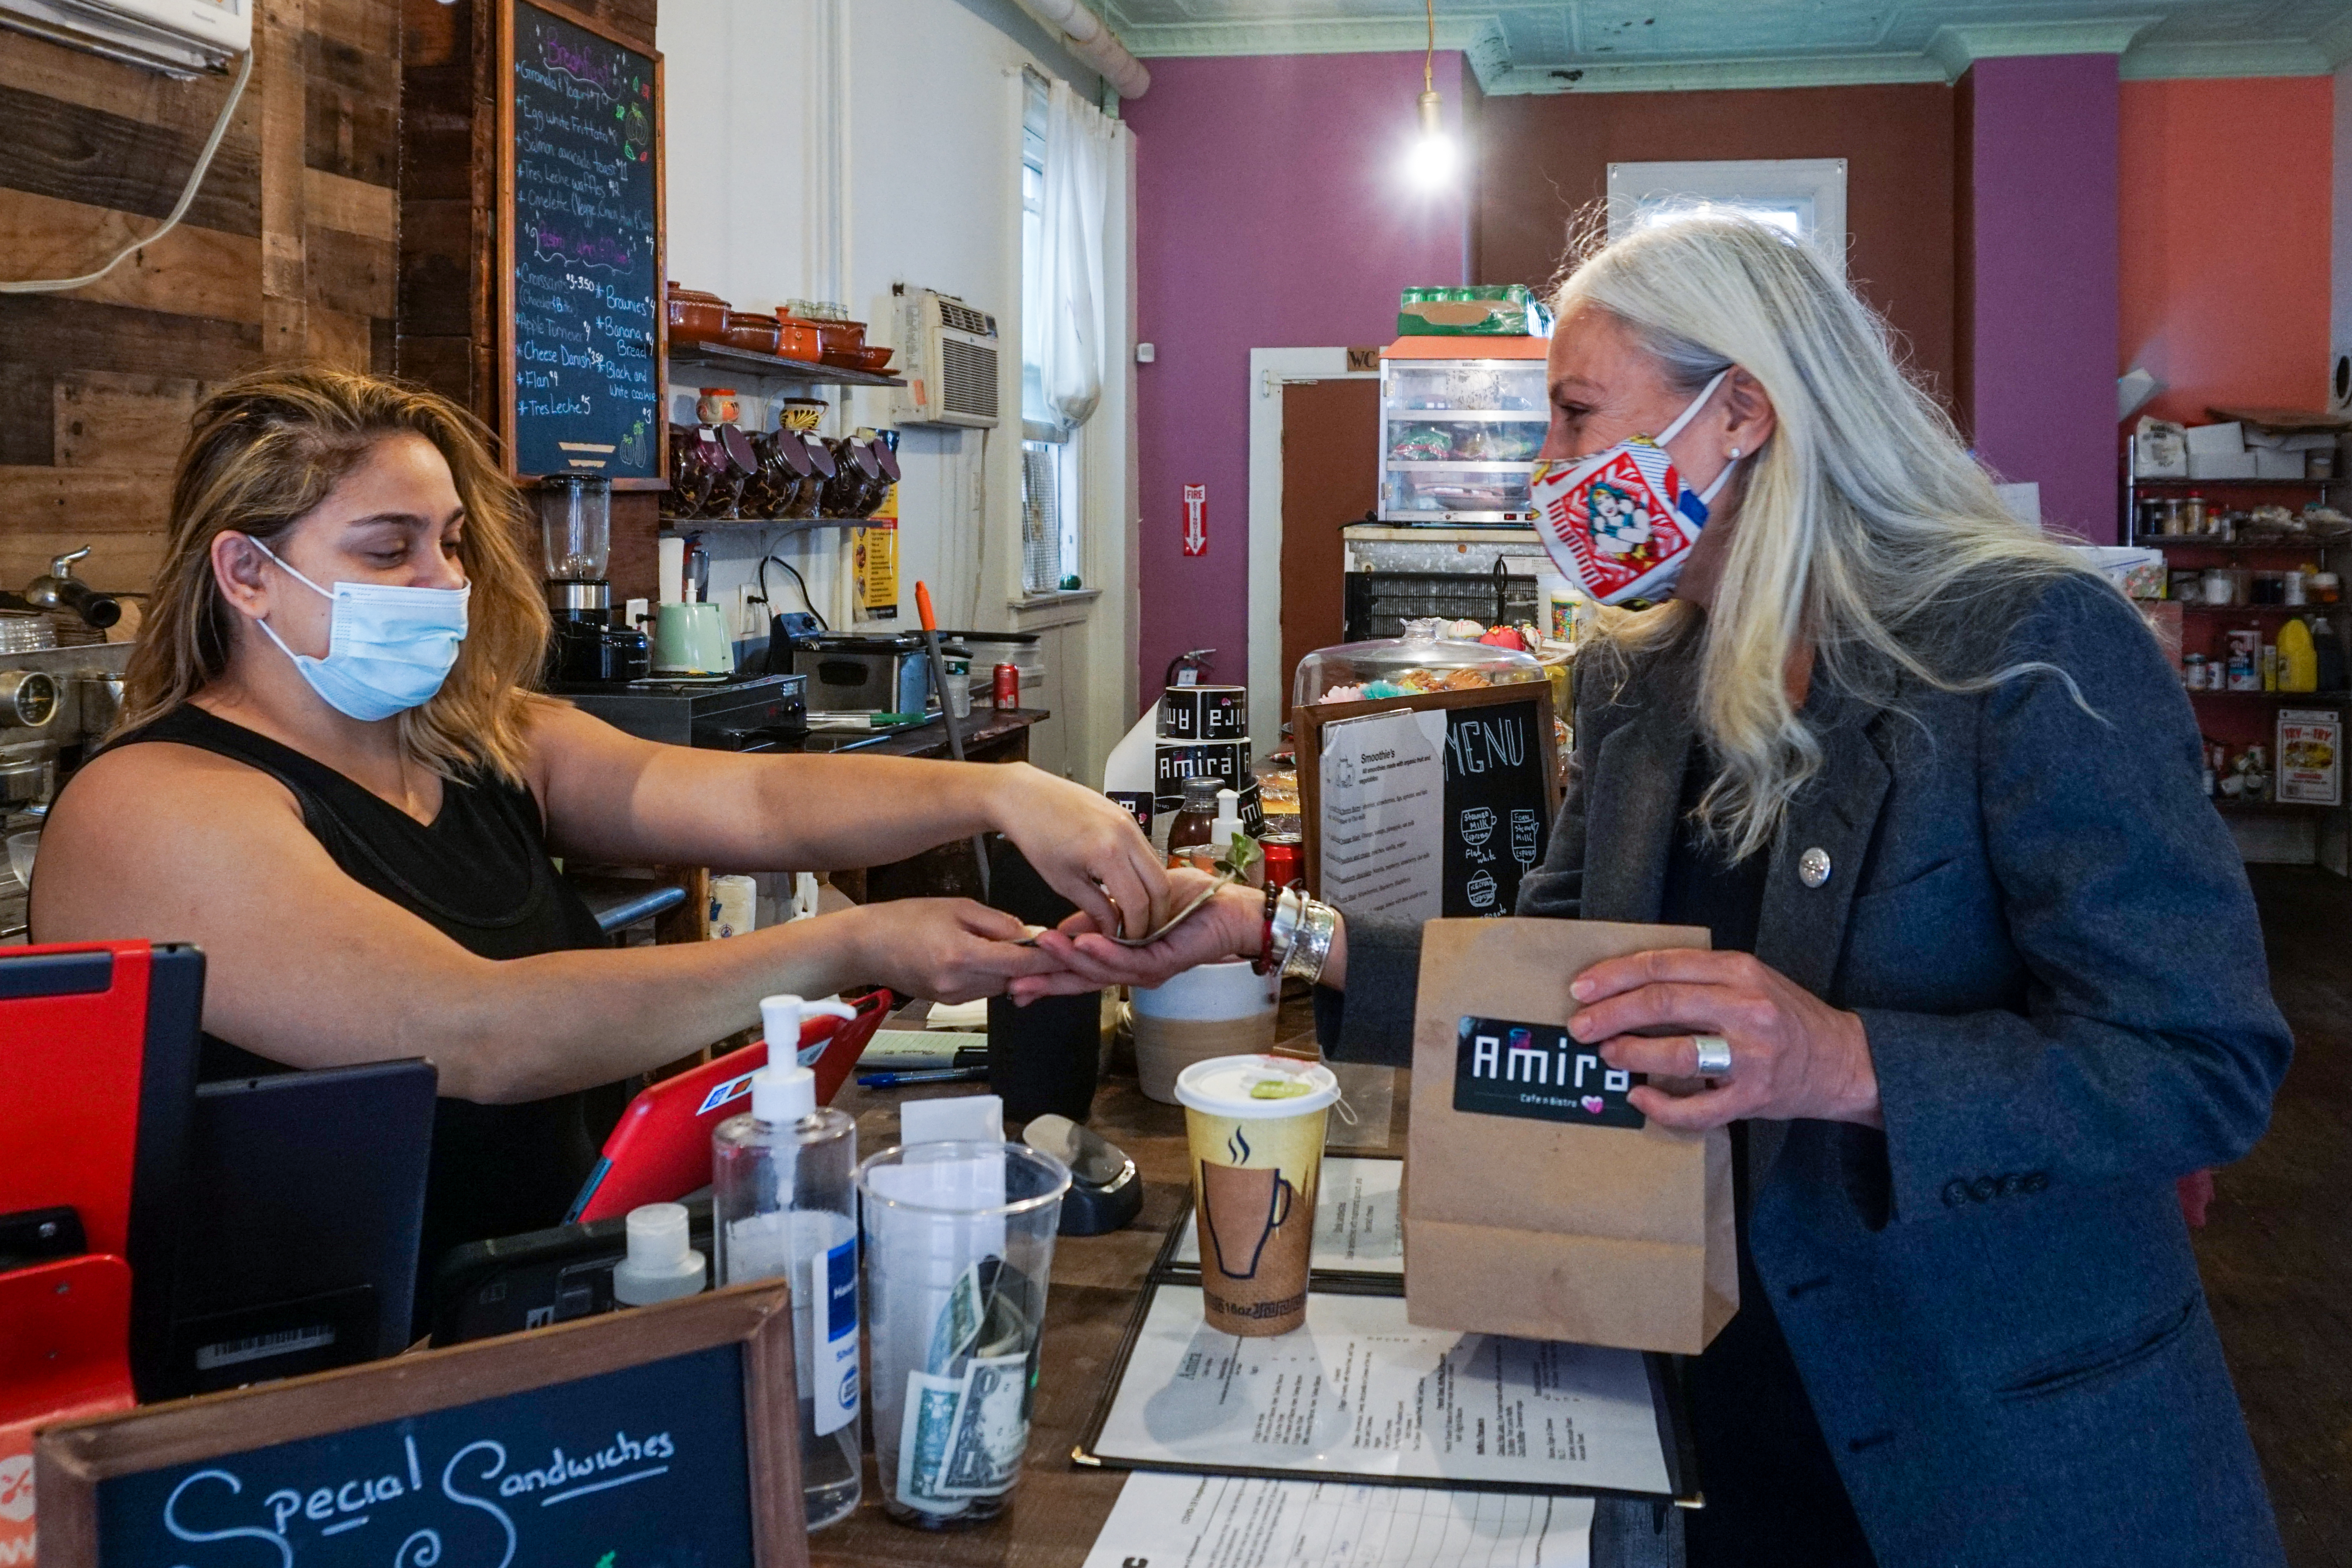 Lorie Honor, a Democrat and small business owner running for Staten Island Borough President, at a small business in the borough's North Shore.